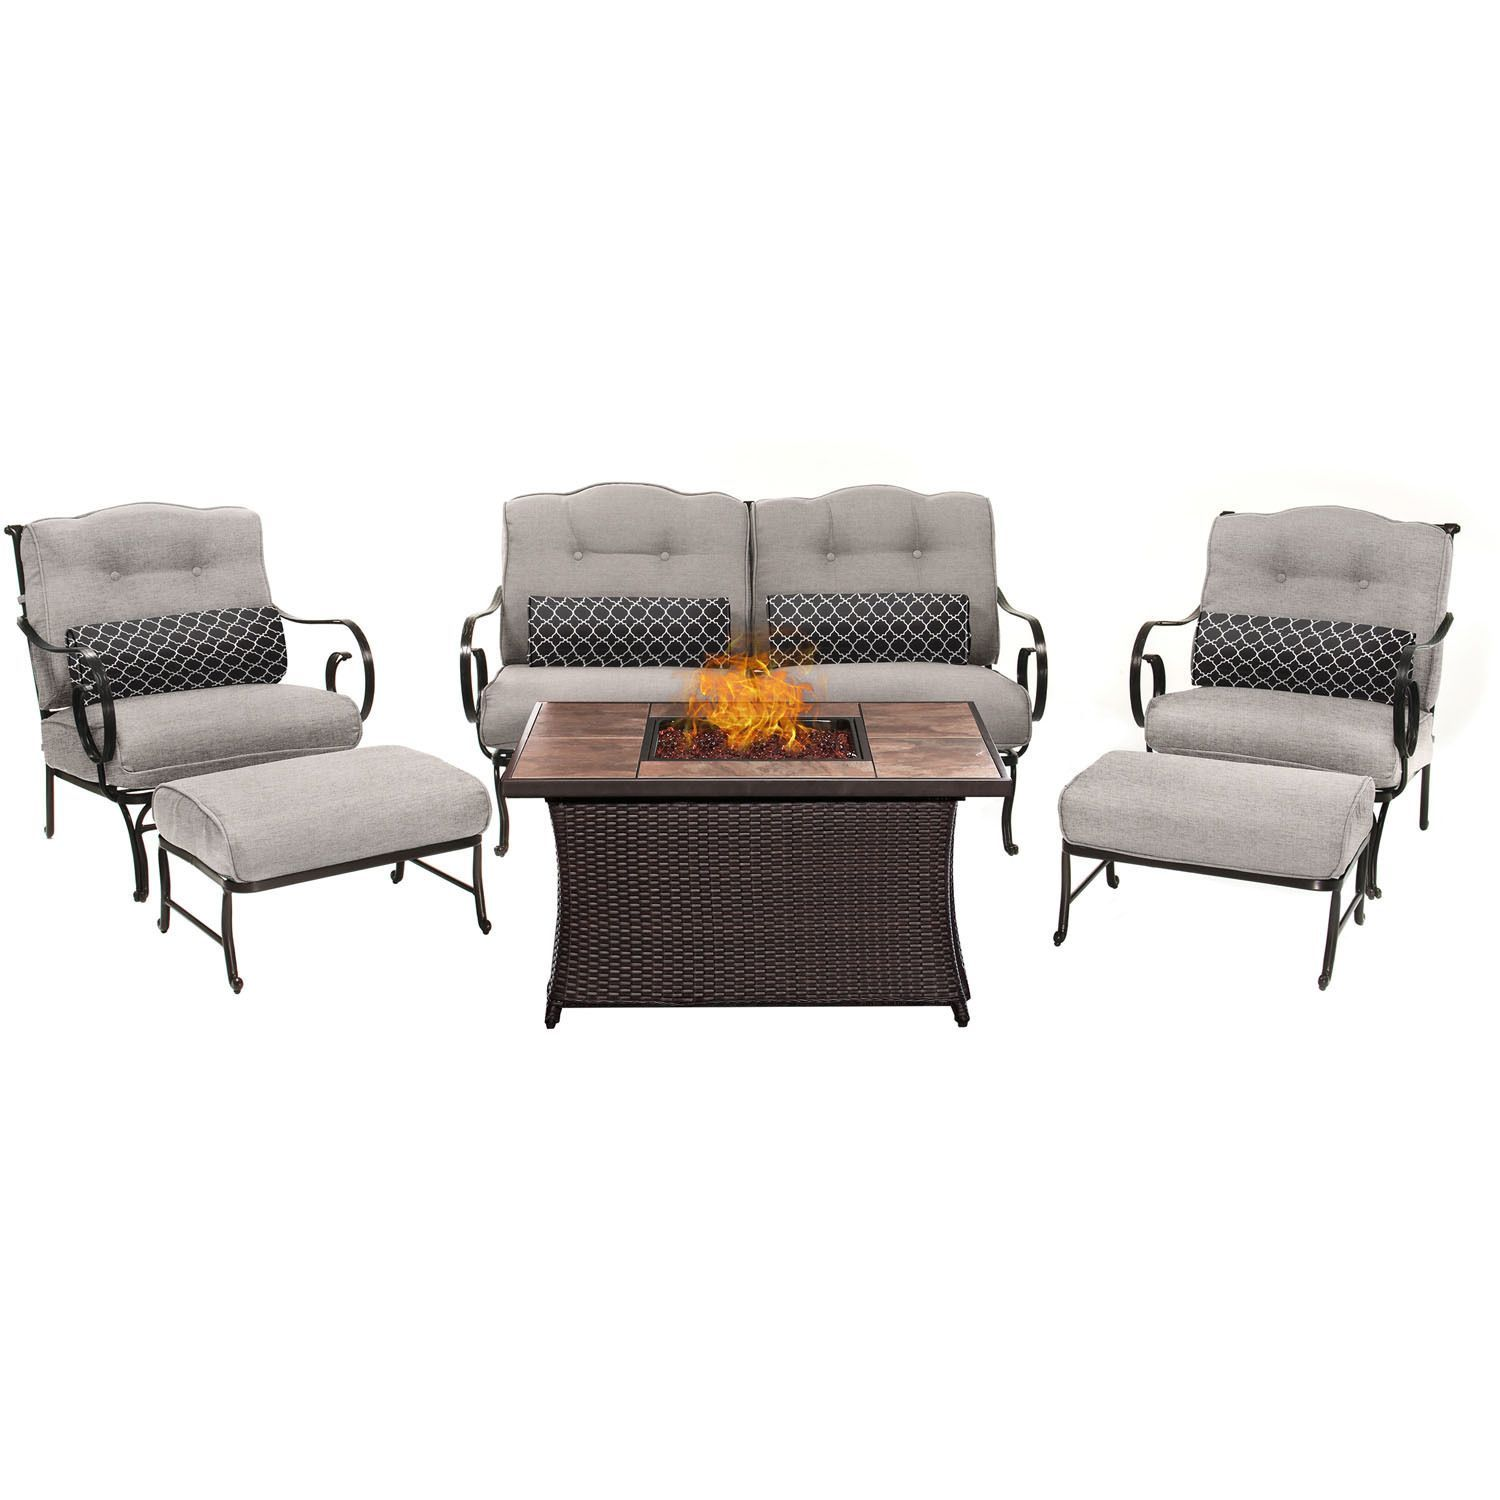 hanover outdoor oceana 6 piece lounge set in silver lining with lp